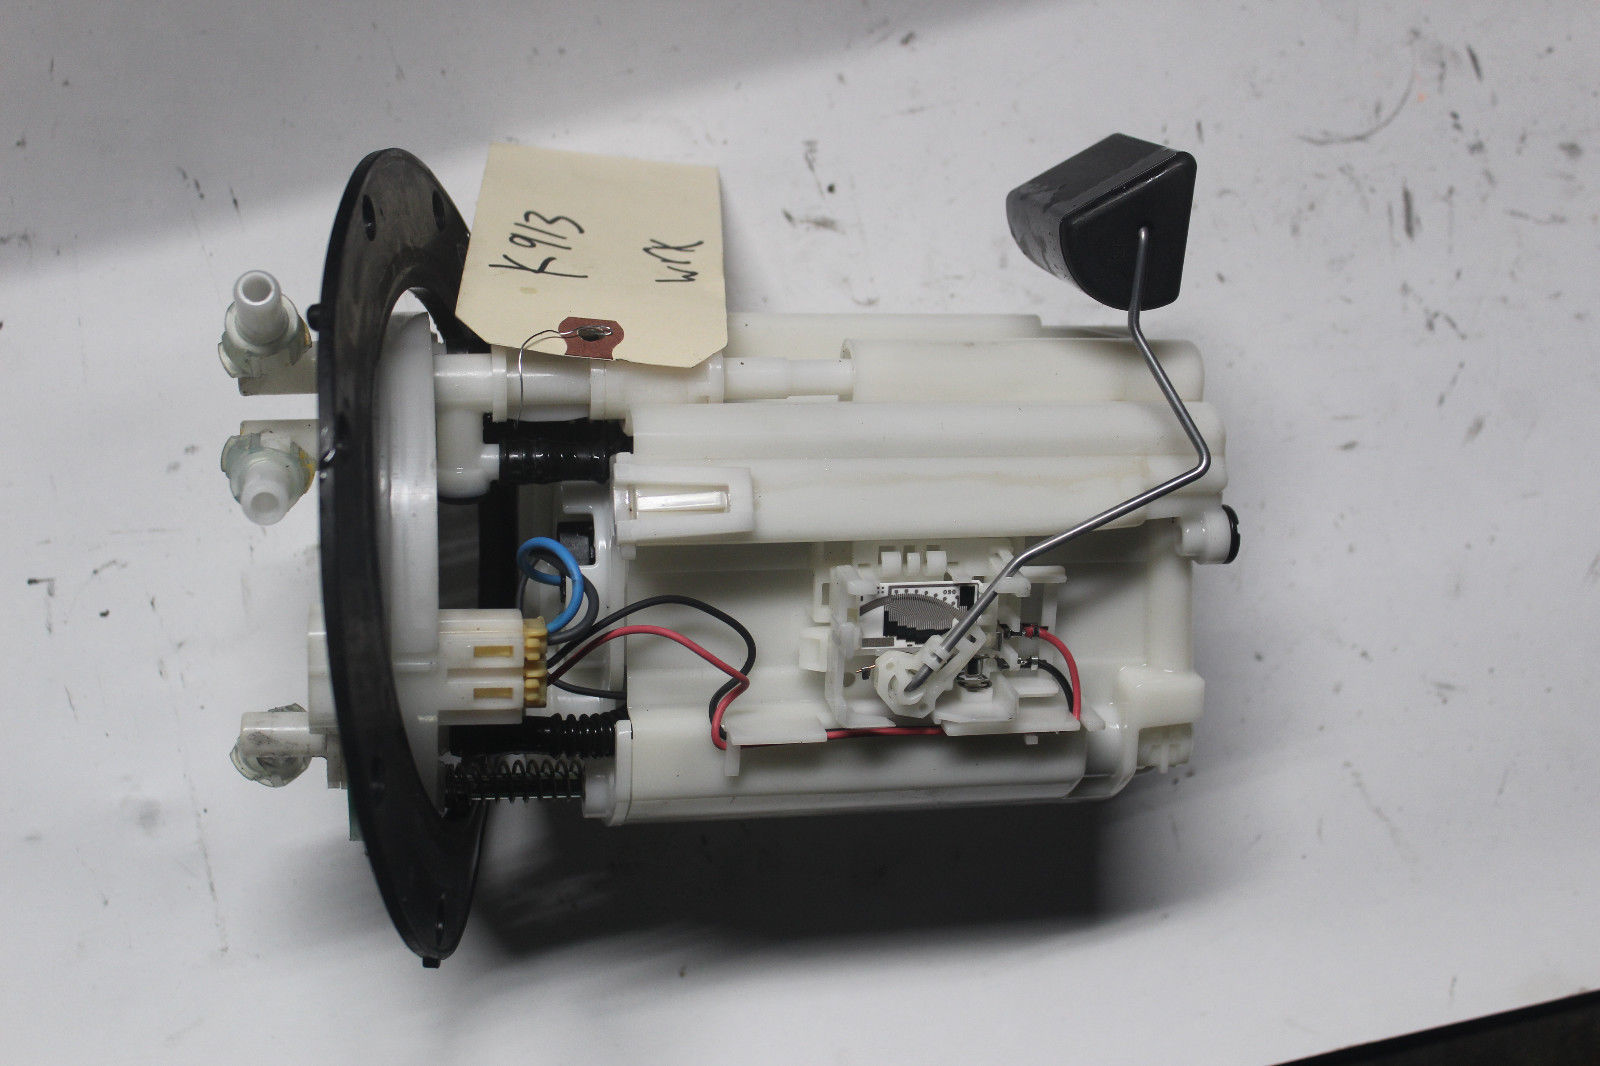 2008 2014 Subaru Impreza Wrx Fuel Pump K913 And 50 Similar Items Infiniti G37 S L1600